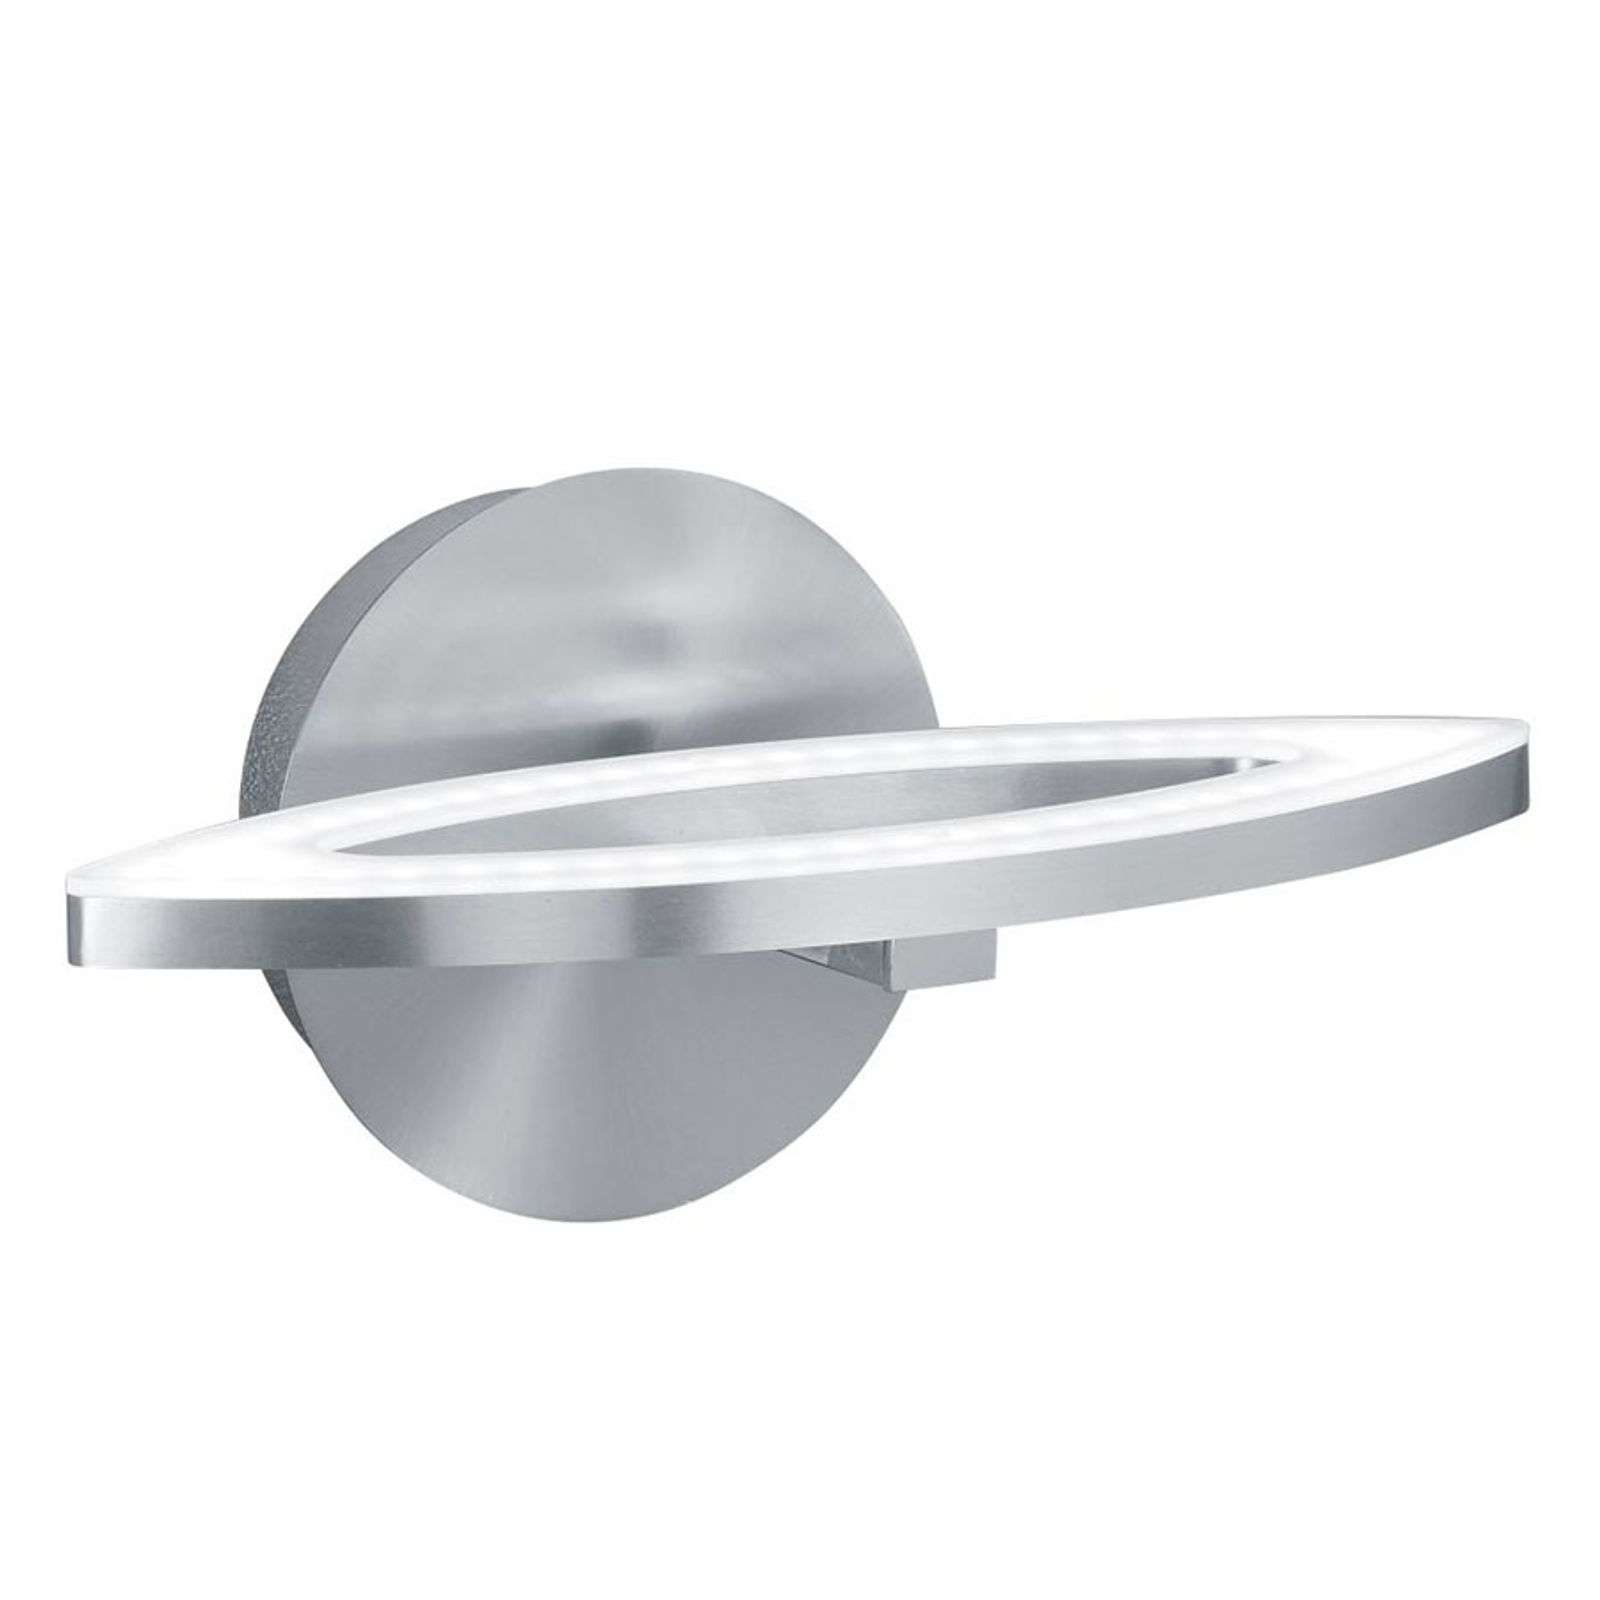 Applique LED River, forme ellipse, interrupteur